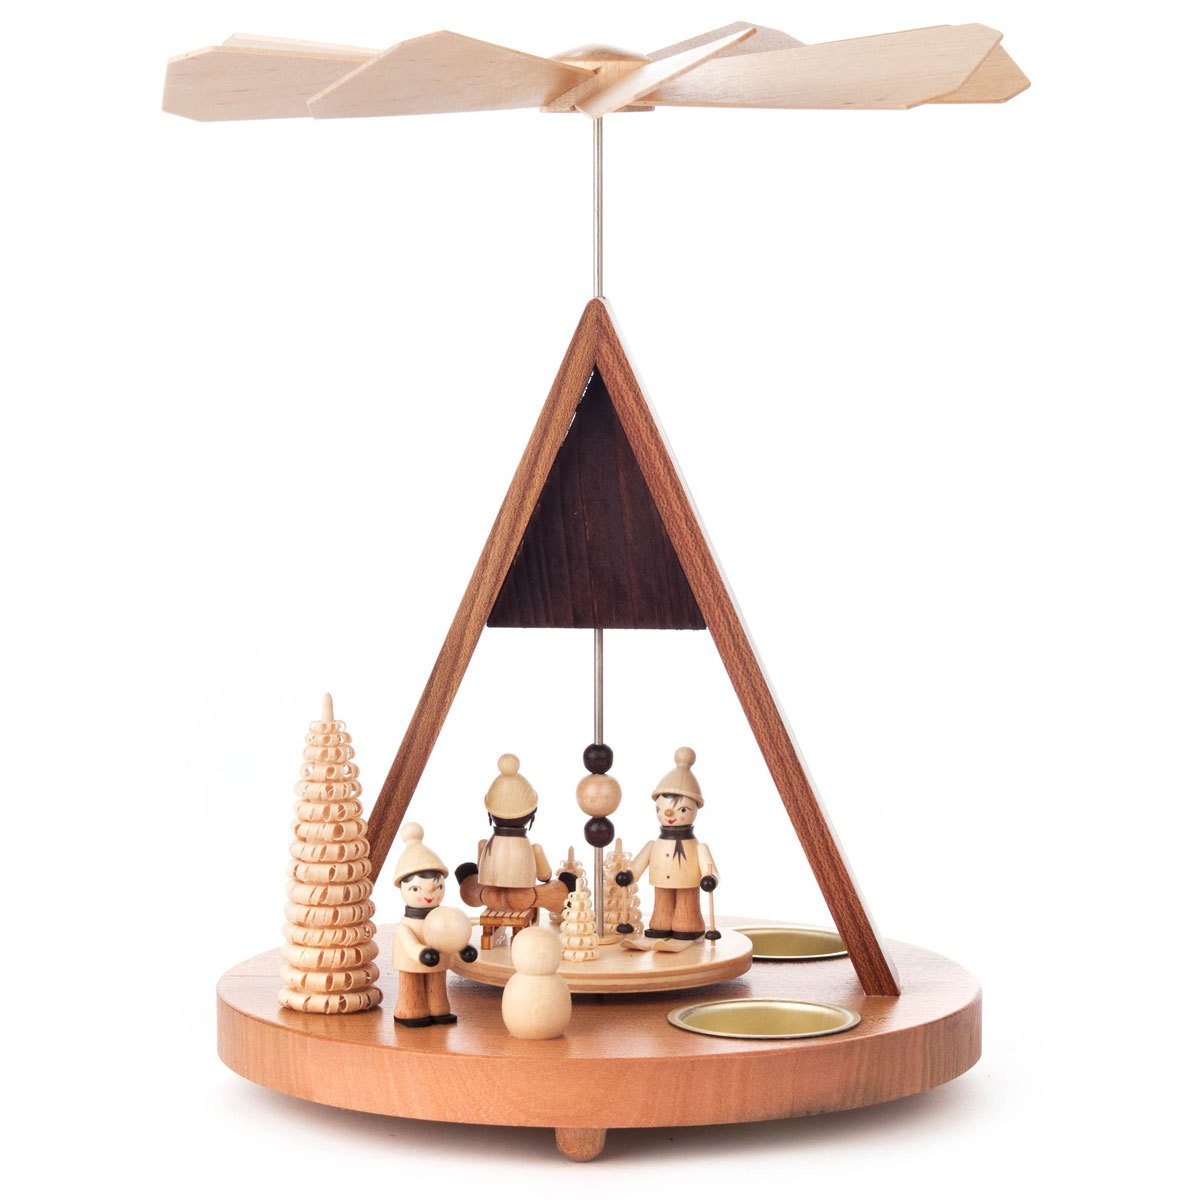 Winter Sports German Pyramid Tealight - Christmas Carousel - 10 Inches Tall